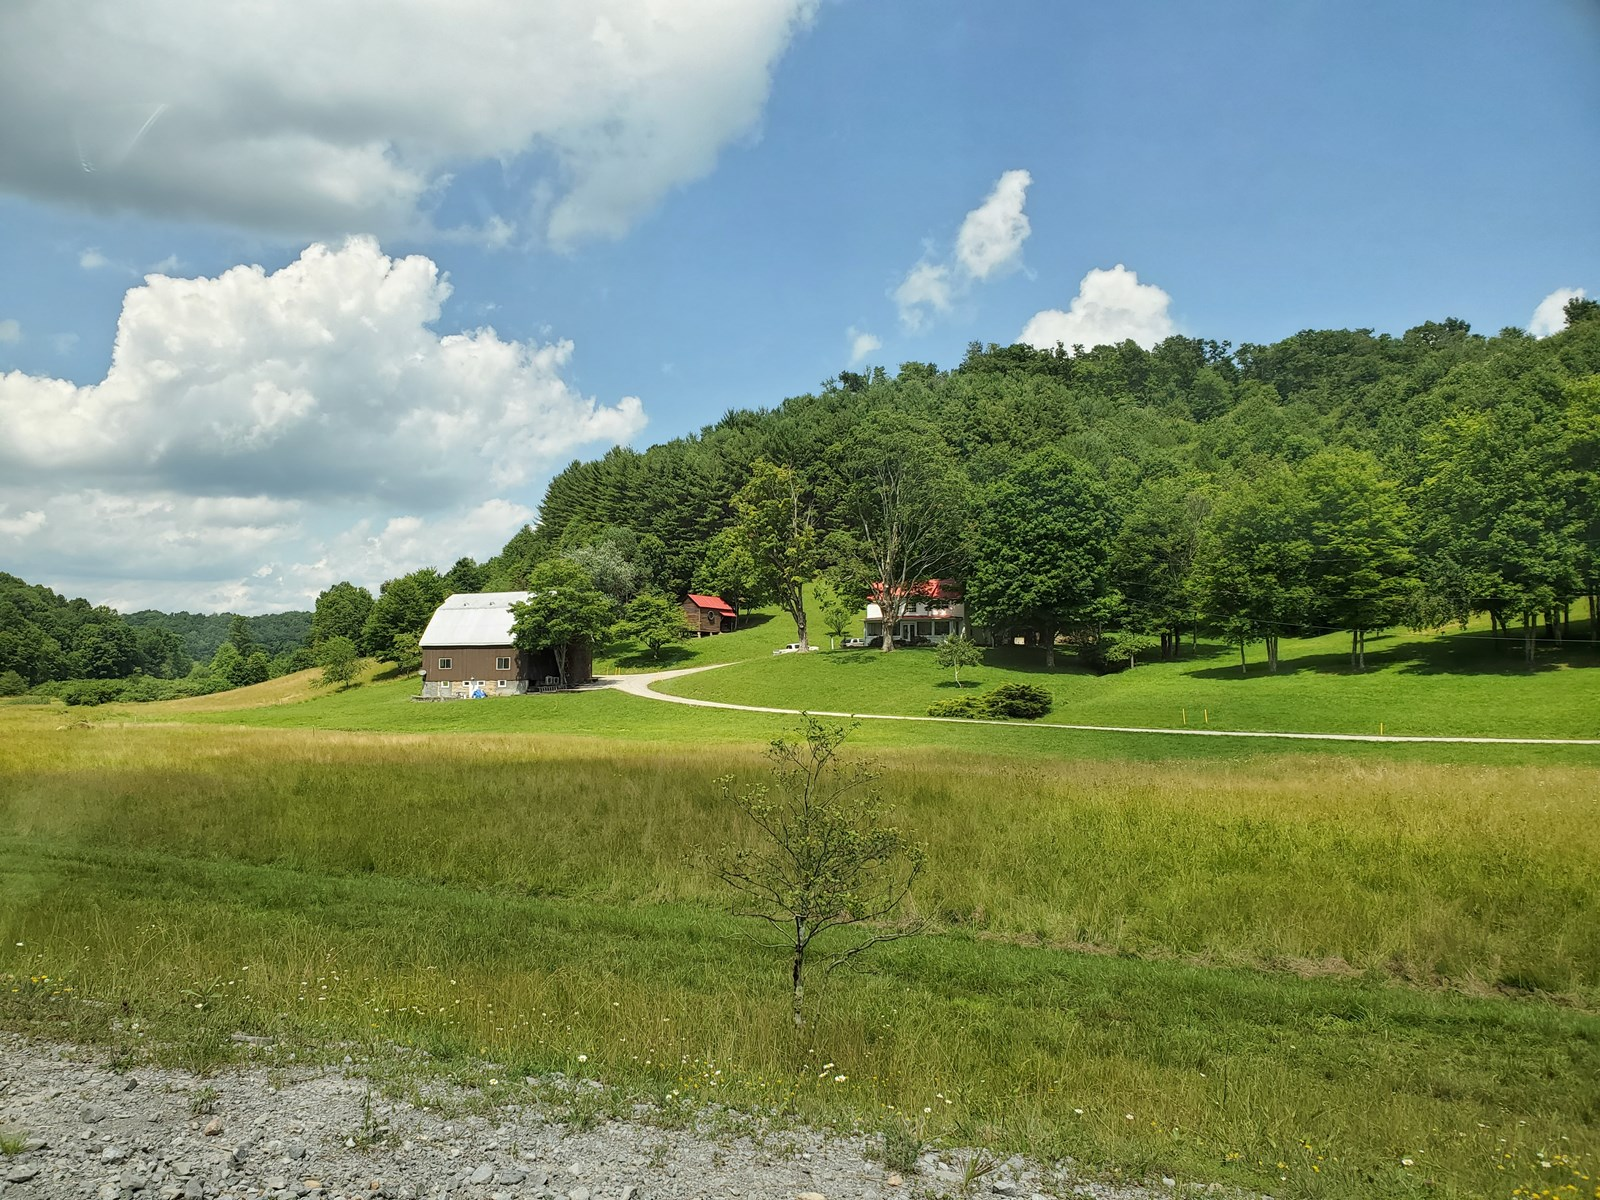 GORGEOUS FARMHOUSE ON 68 AC. IN A SCENIC VALLEY SETTING